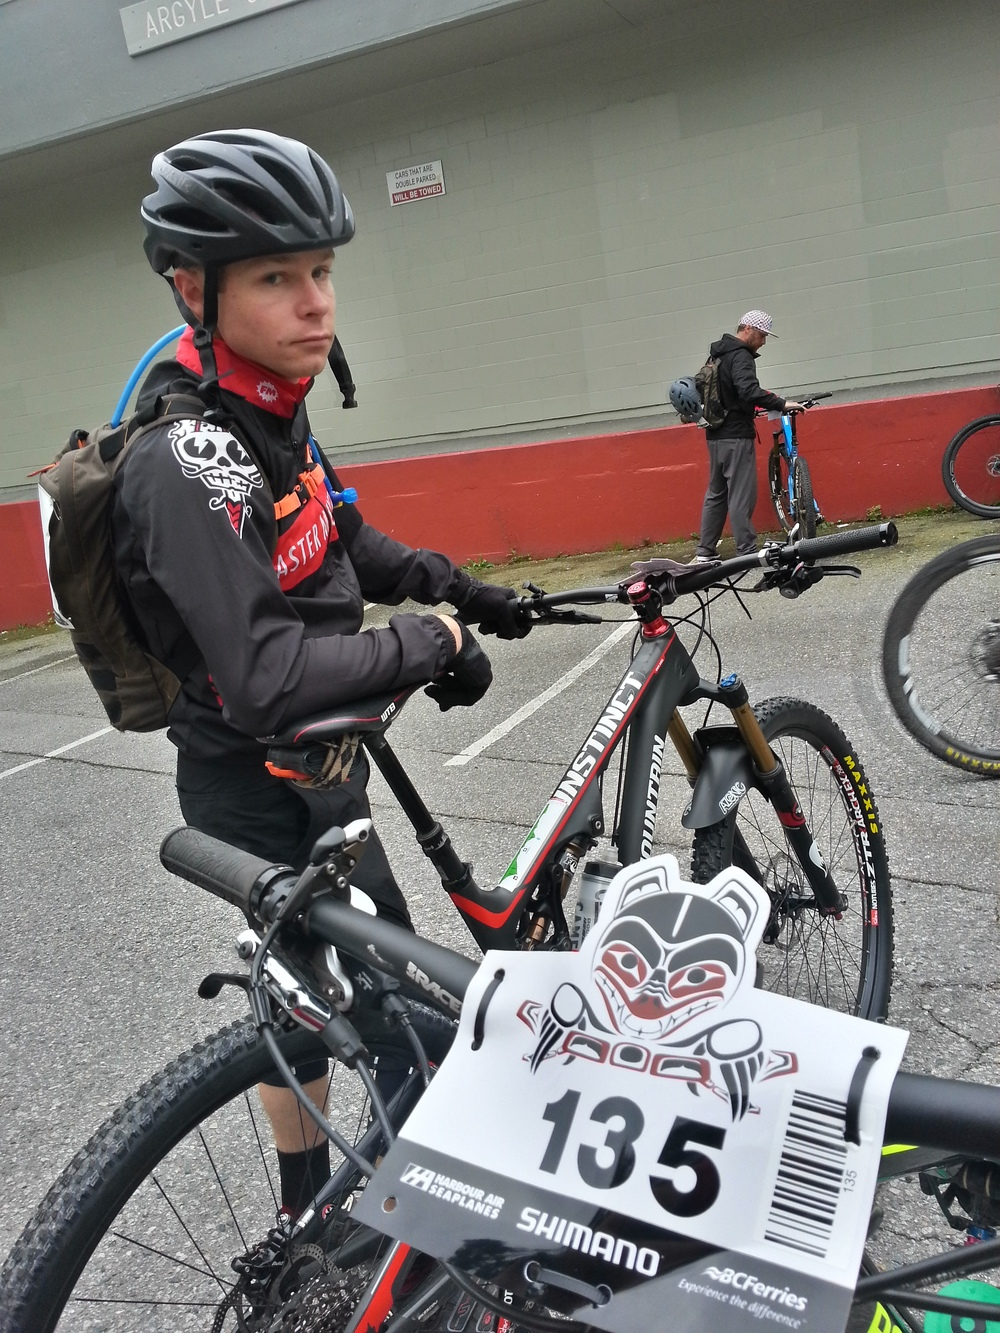 Race face before the start of Stage 1